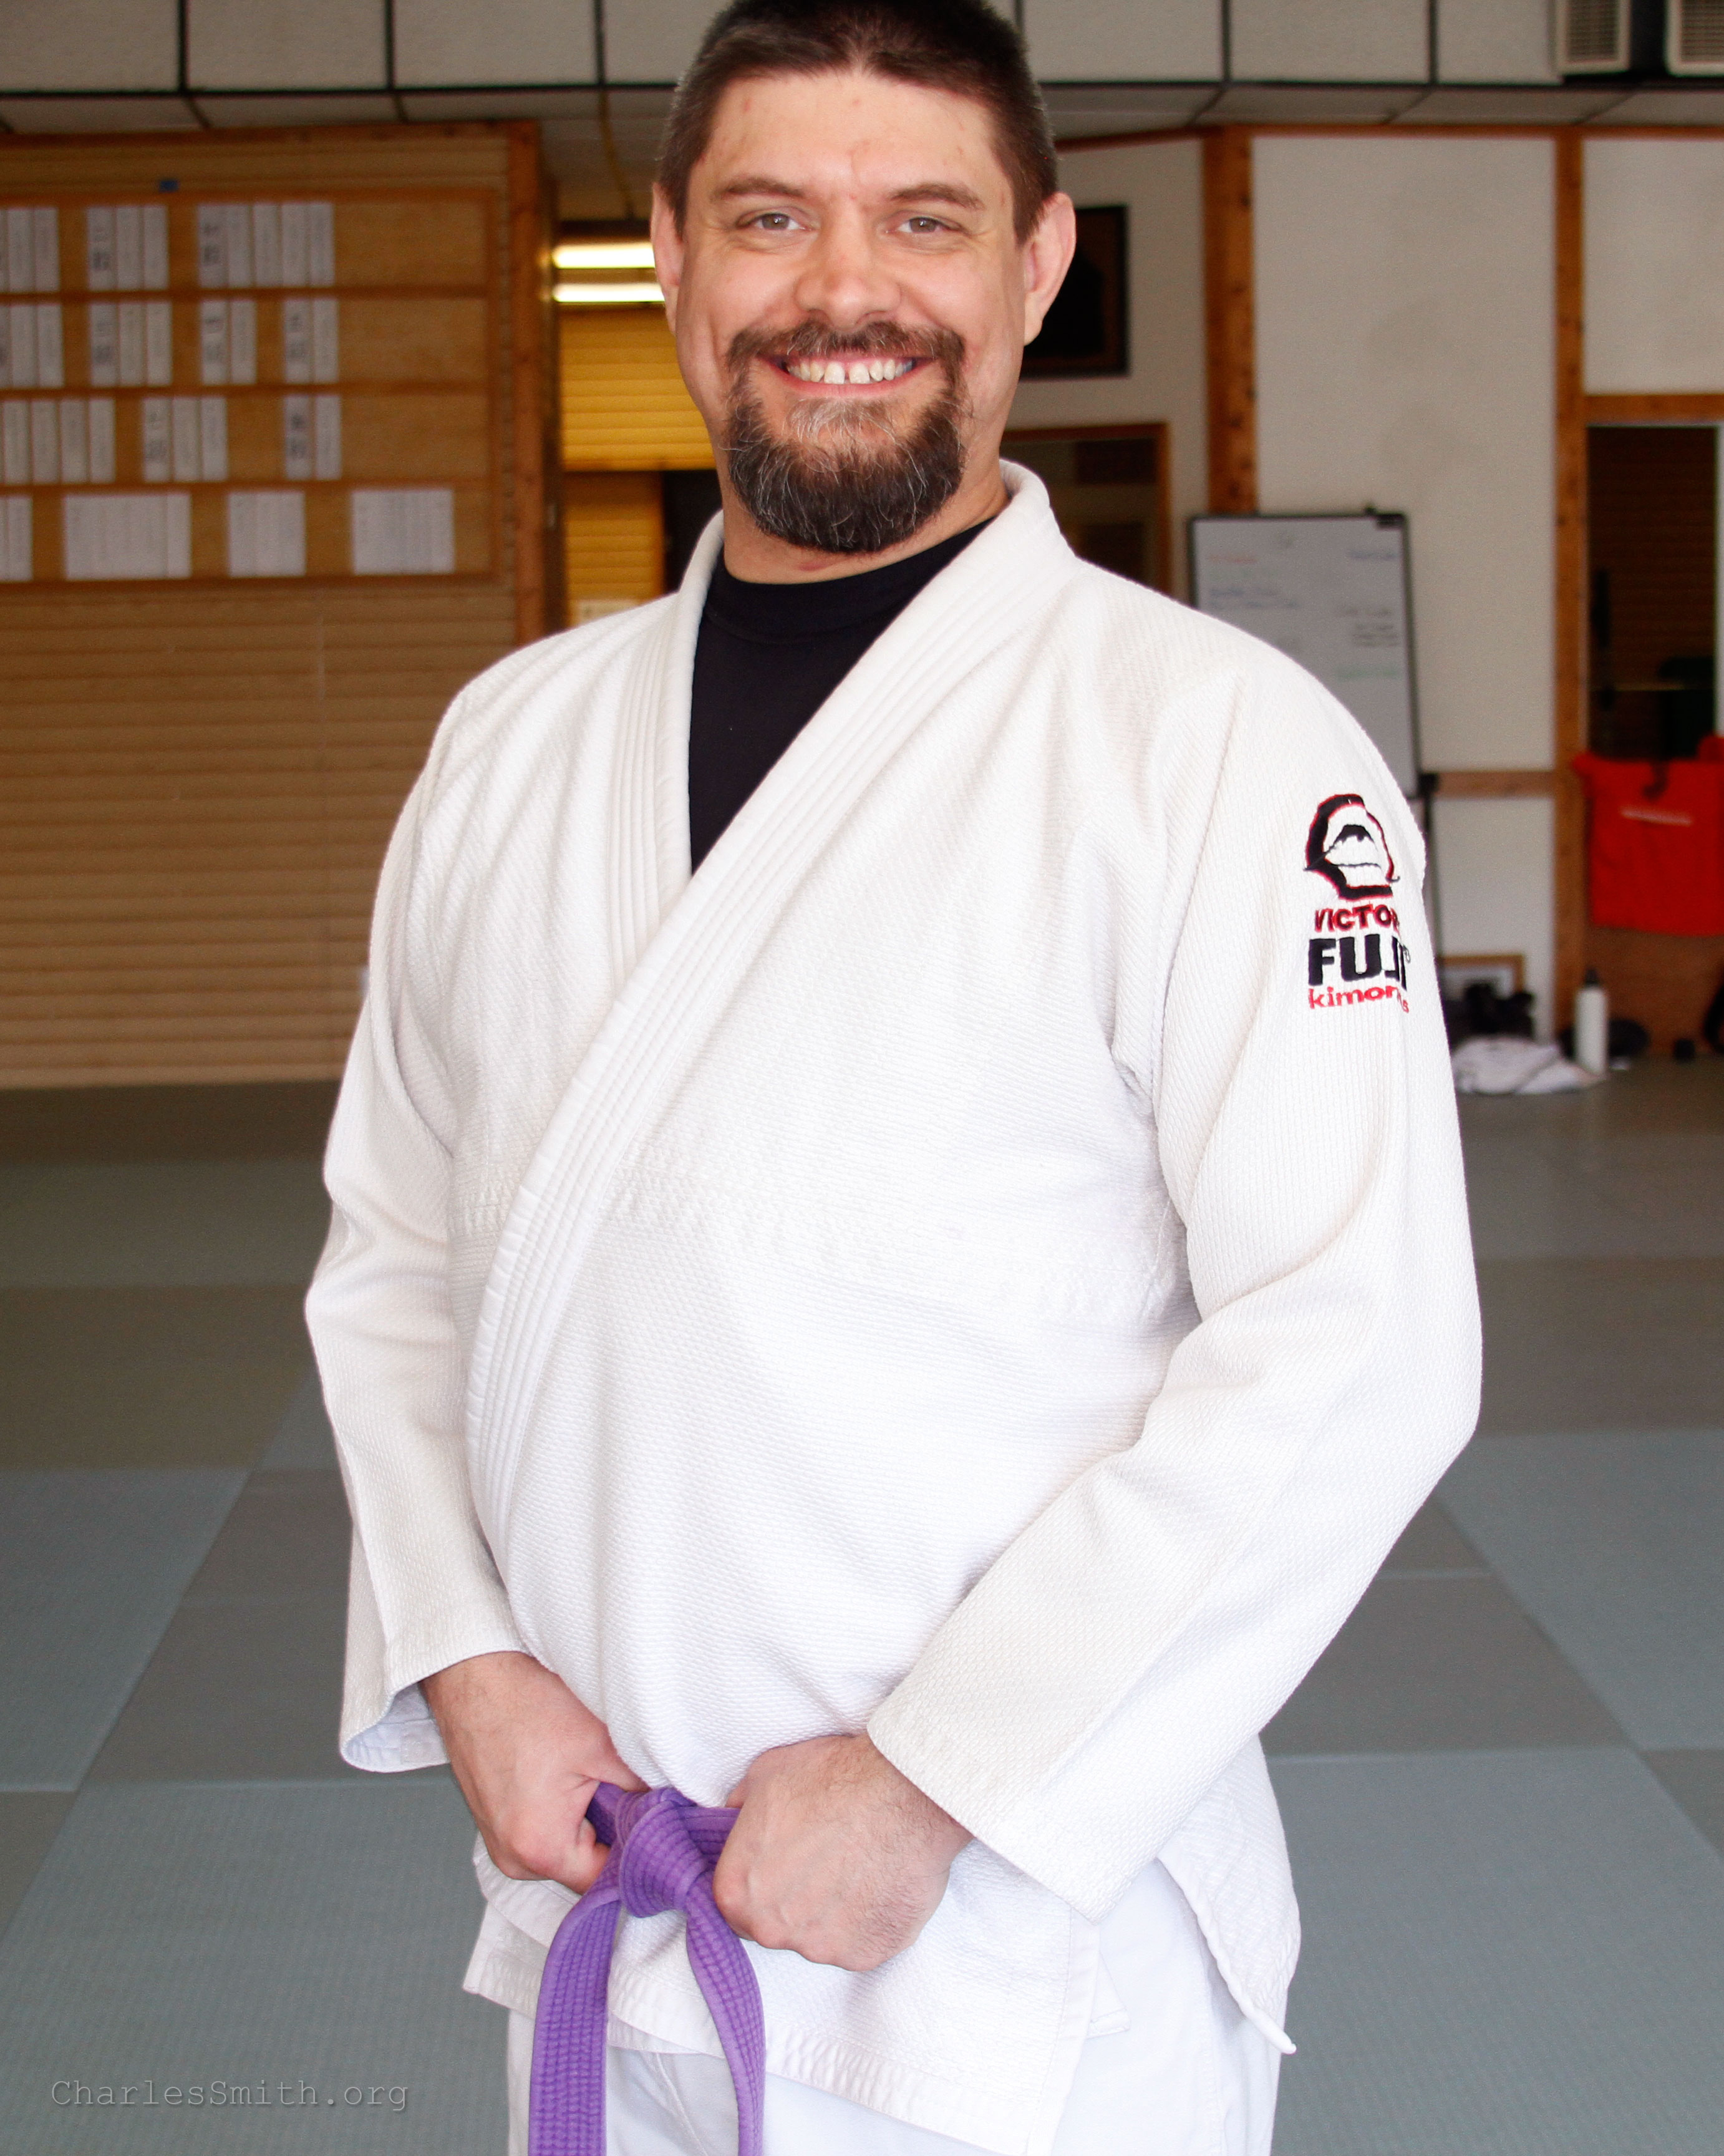 Charles Smith at the Toyoda Center